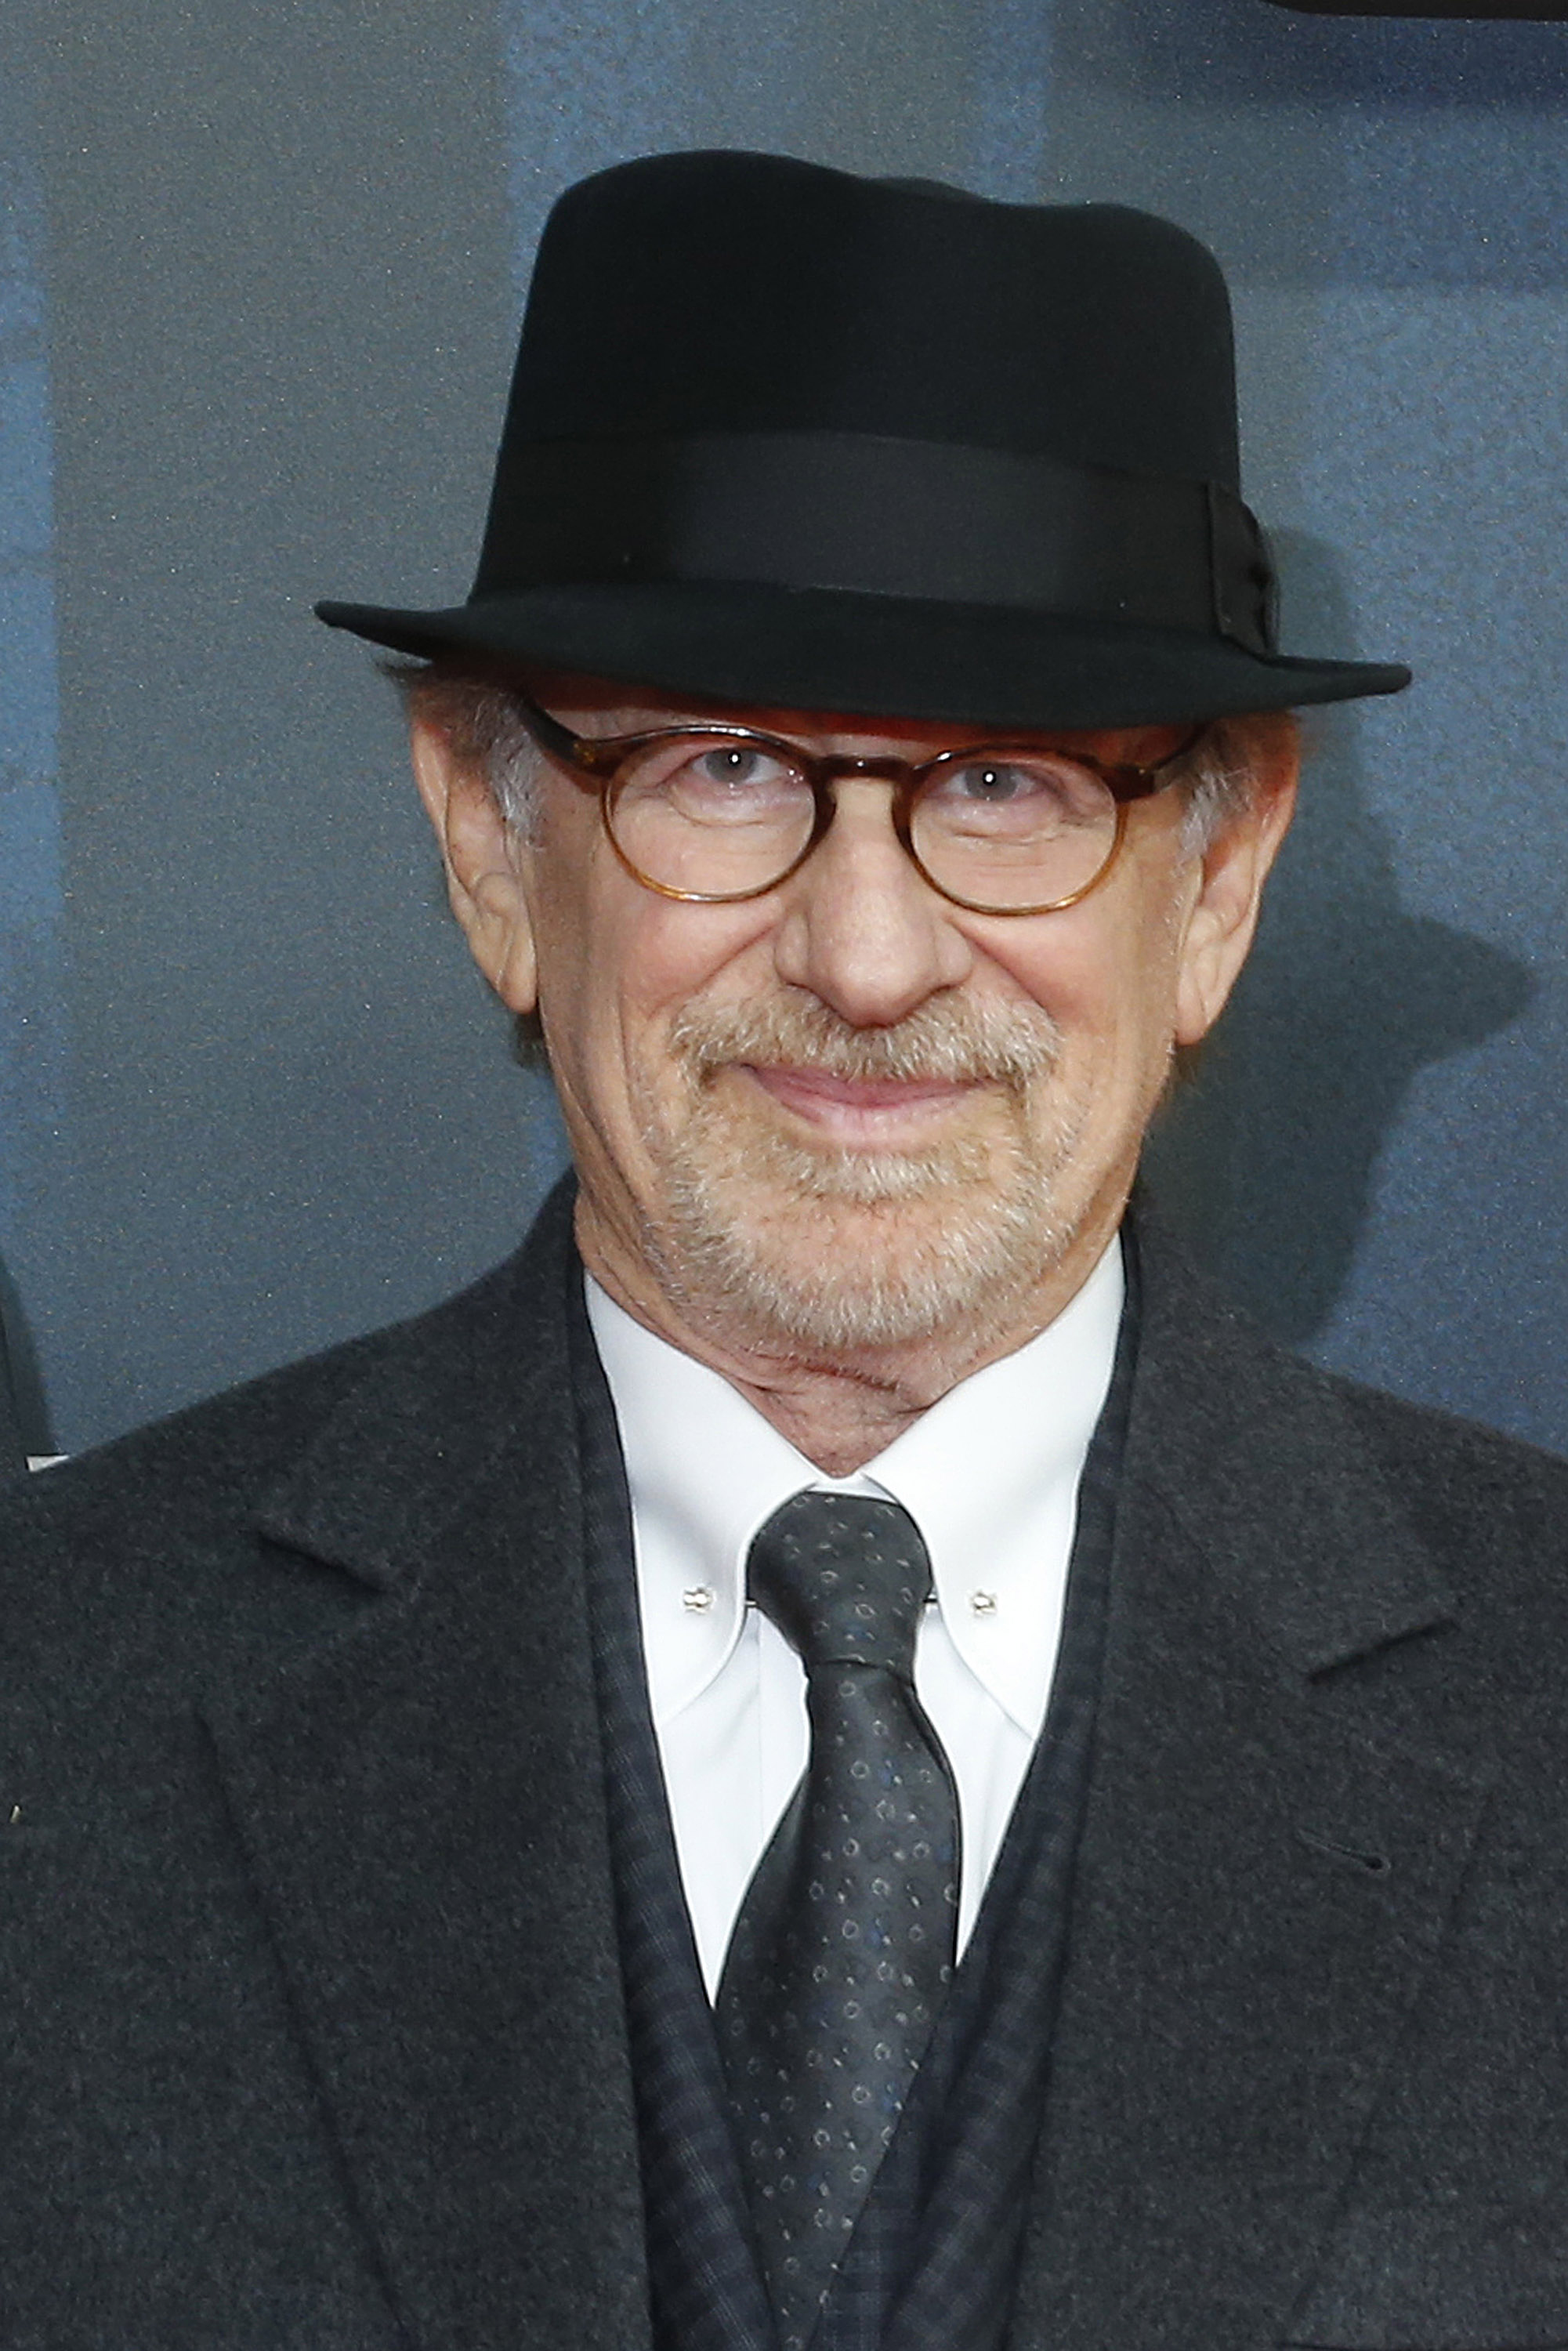 Steven Spielberg at the  Bridge of Spies - Der Unterhaendler  World Premiere in Berlin on Nov. 13, 2015.